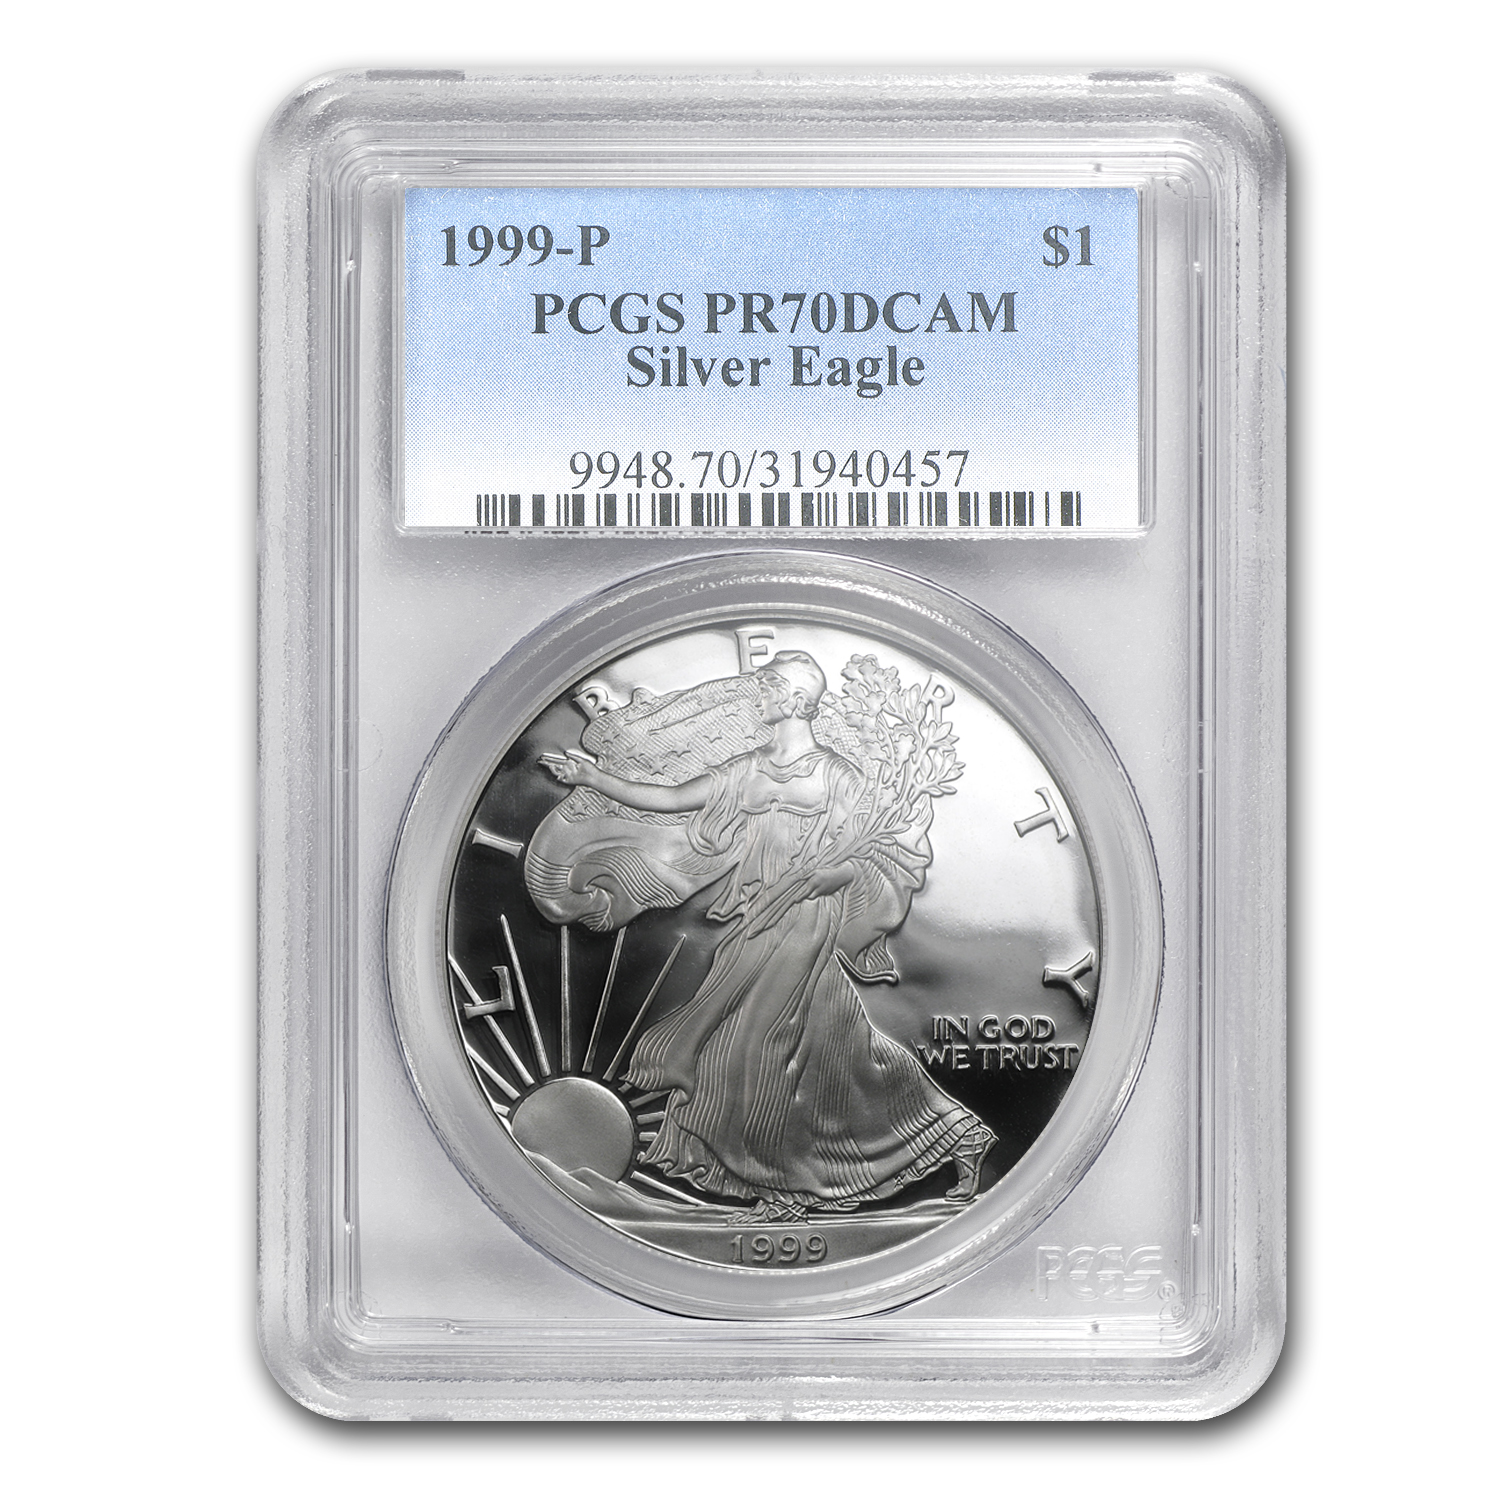 1999-P Proof Silver American Eagle PR-70 PCGS